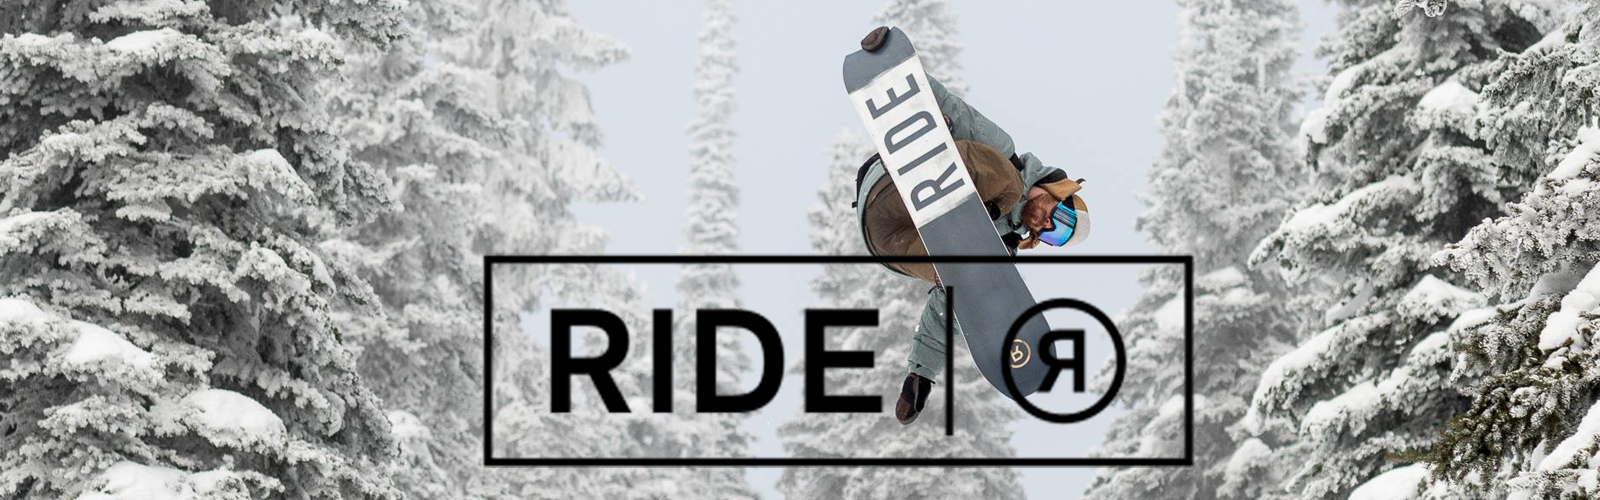 snowboarder in the air grabbing his board with trees in the background and a Ride Logo over top.